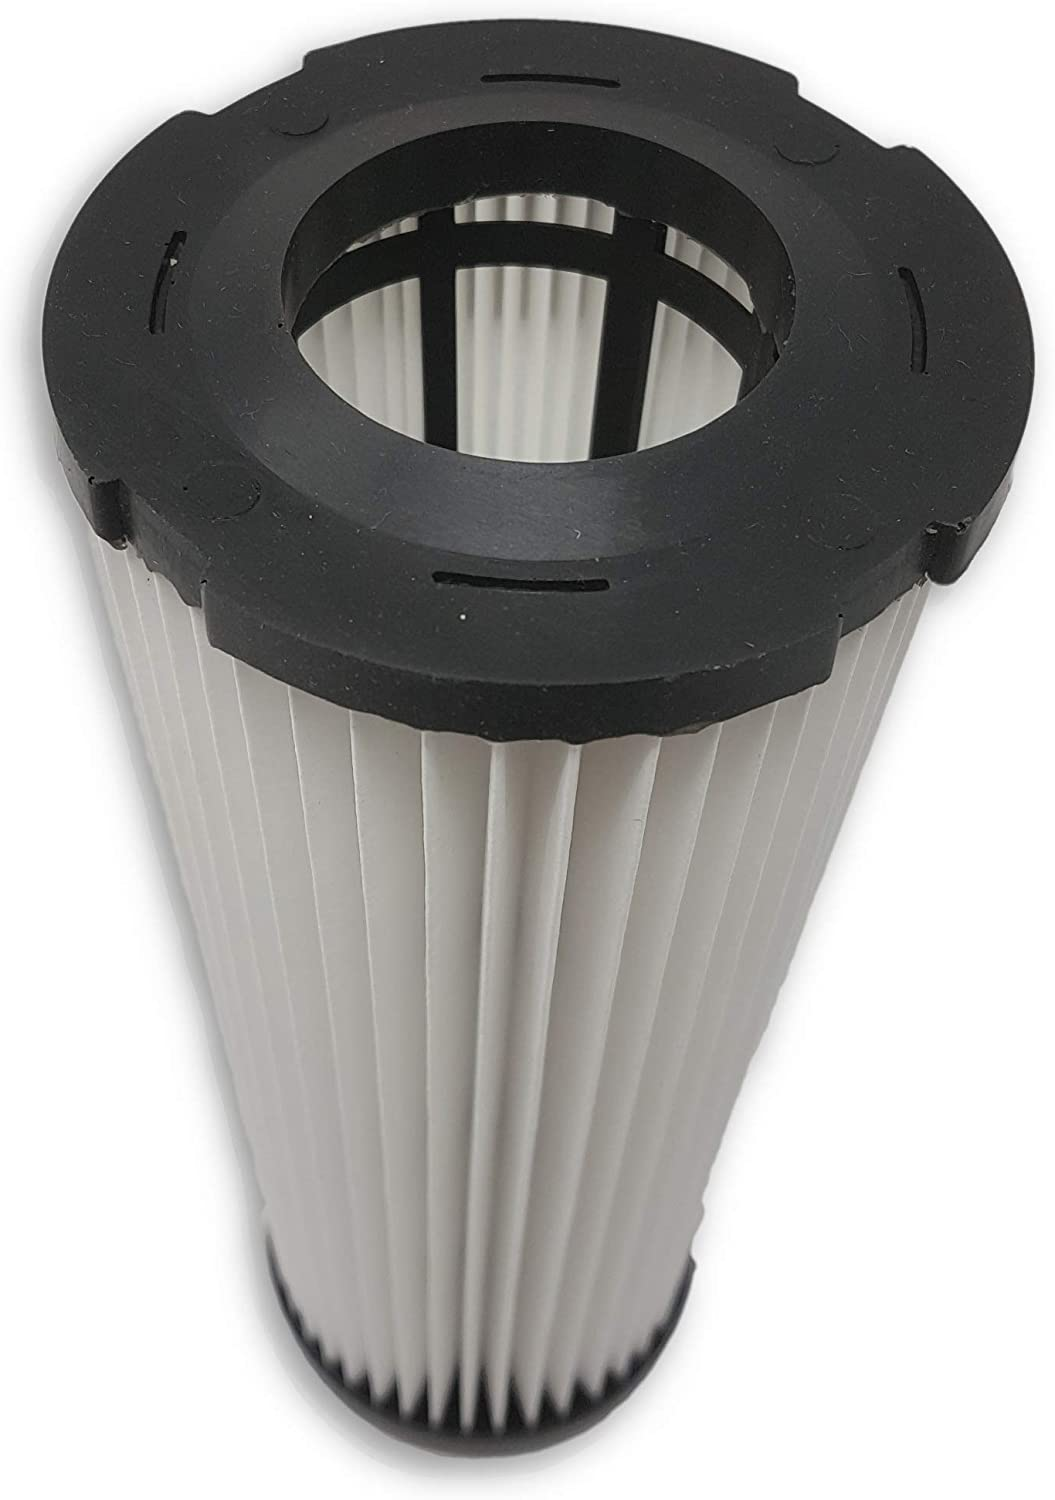 Dirt Devil-2 Washable F1 Hepa Filters For Vacuums.